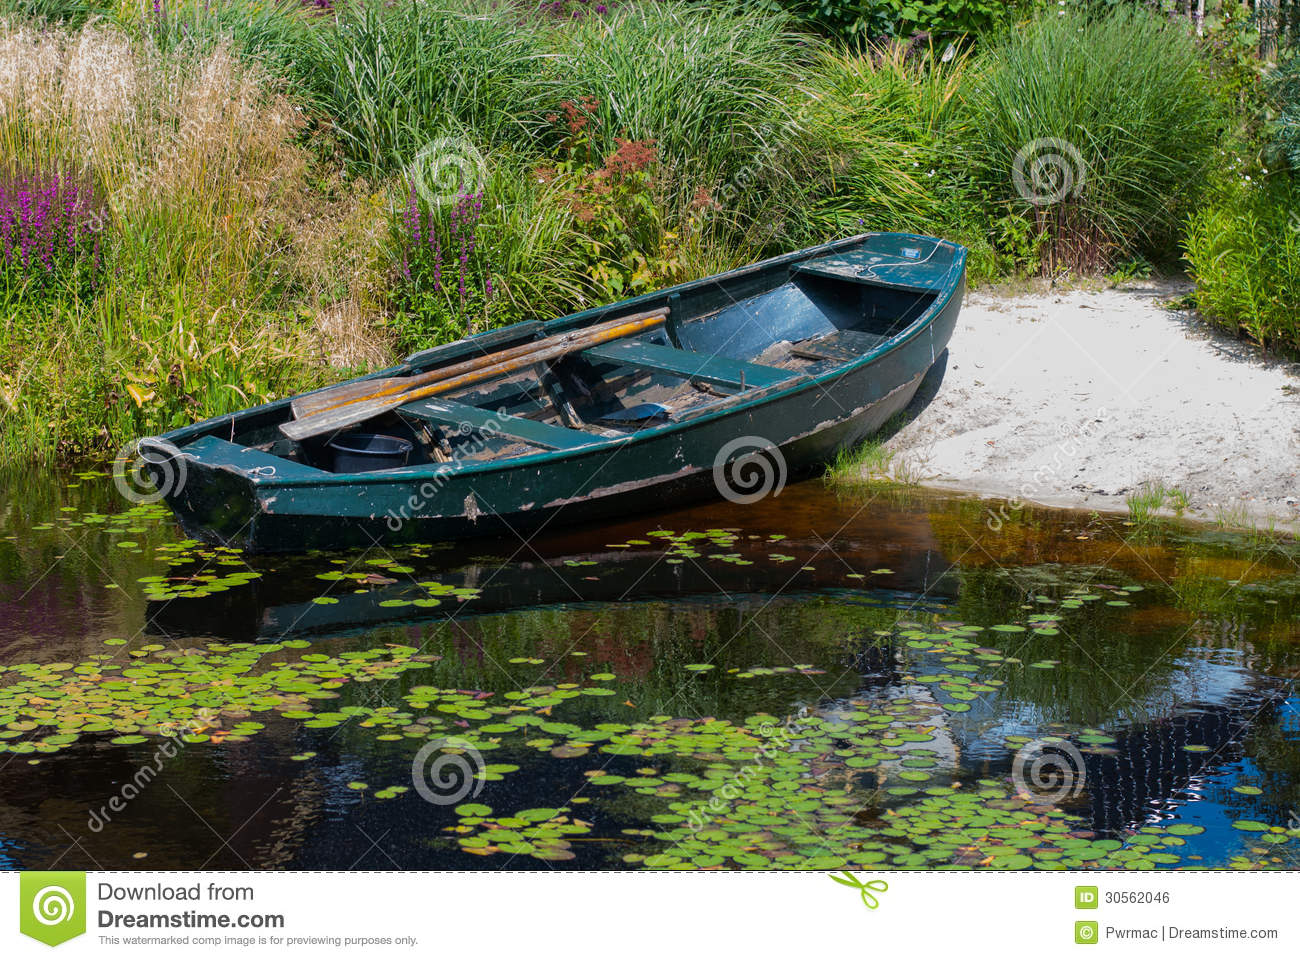 Rowboat in a garden pond royalty free stock image image for Garden pond unlimited